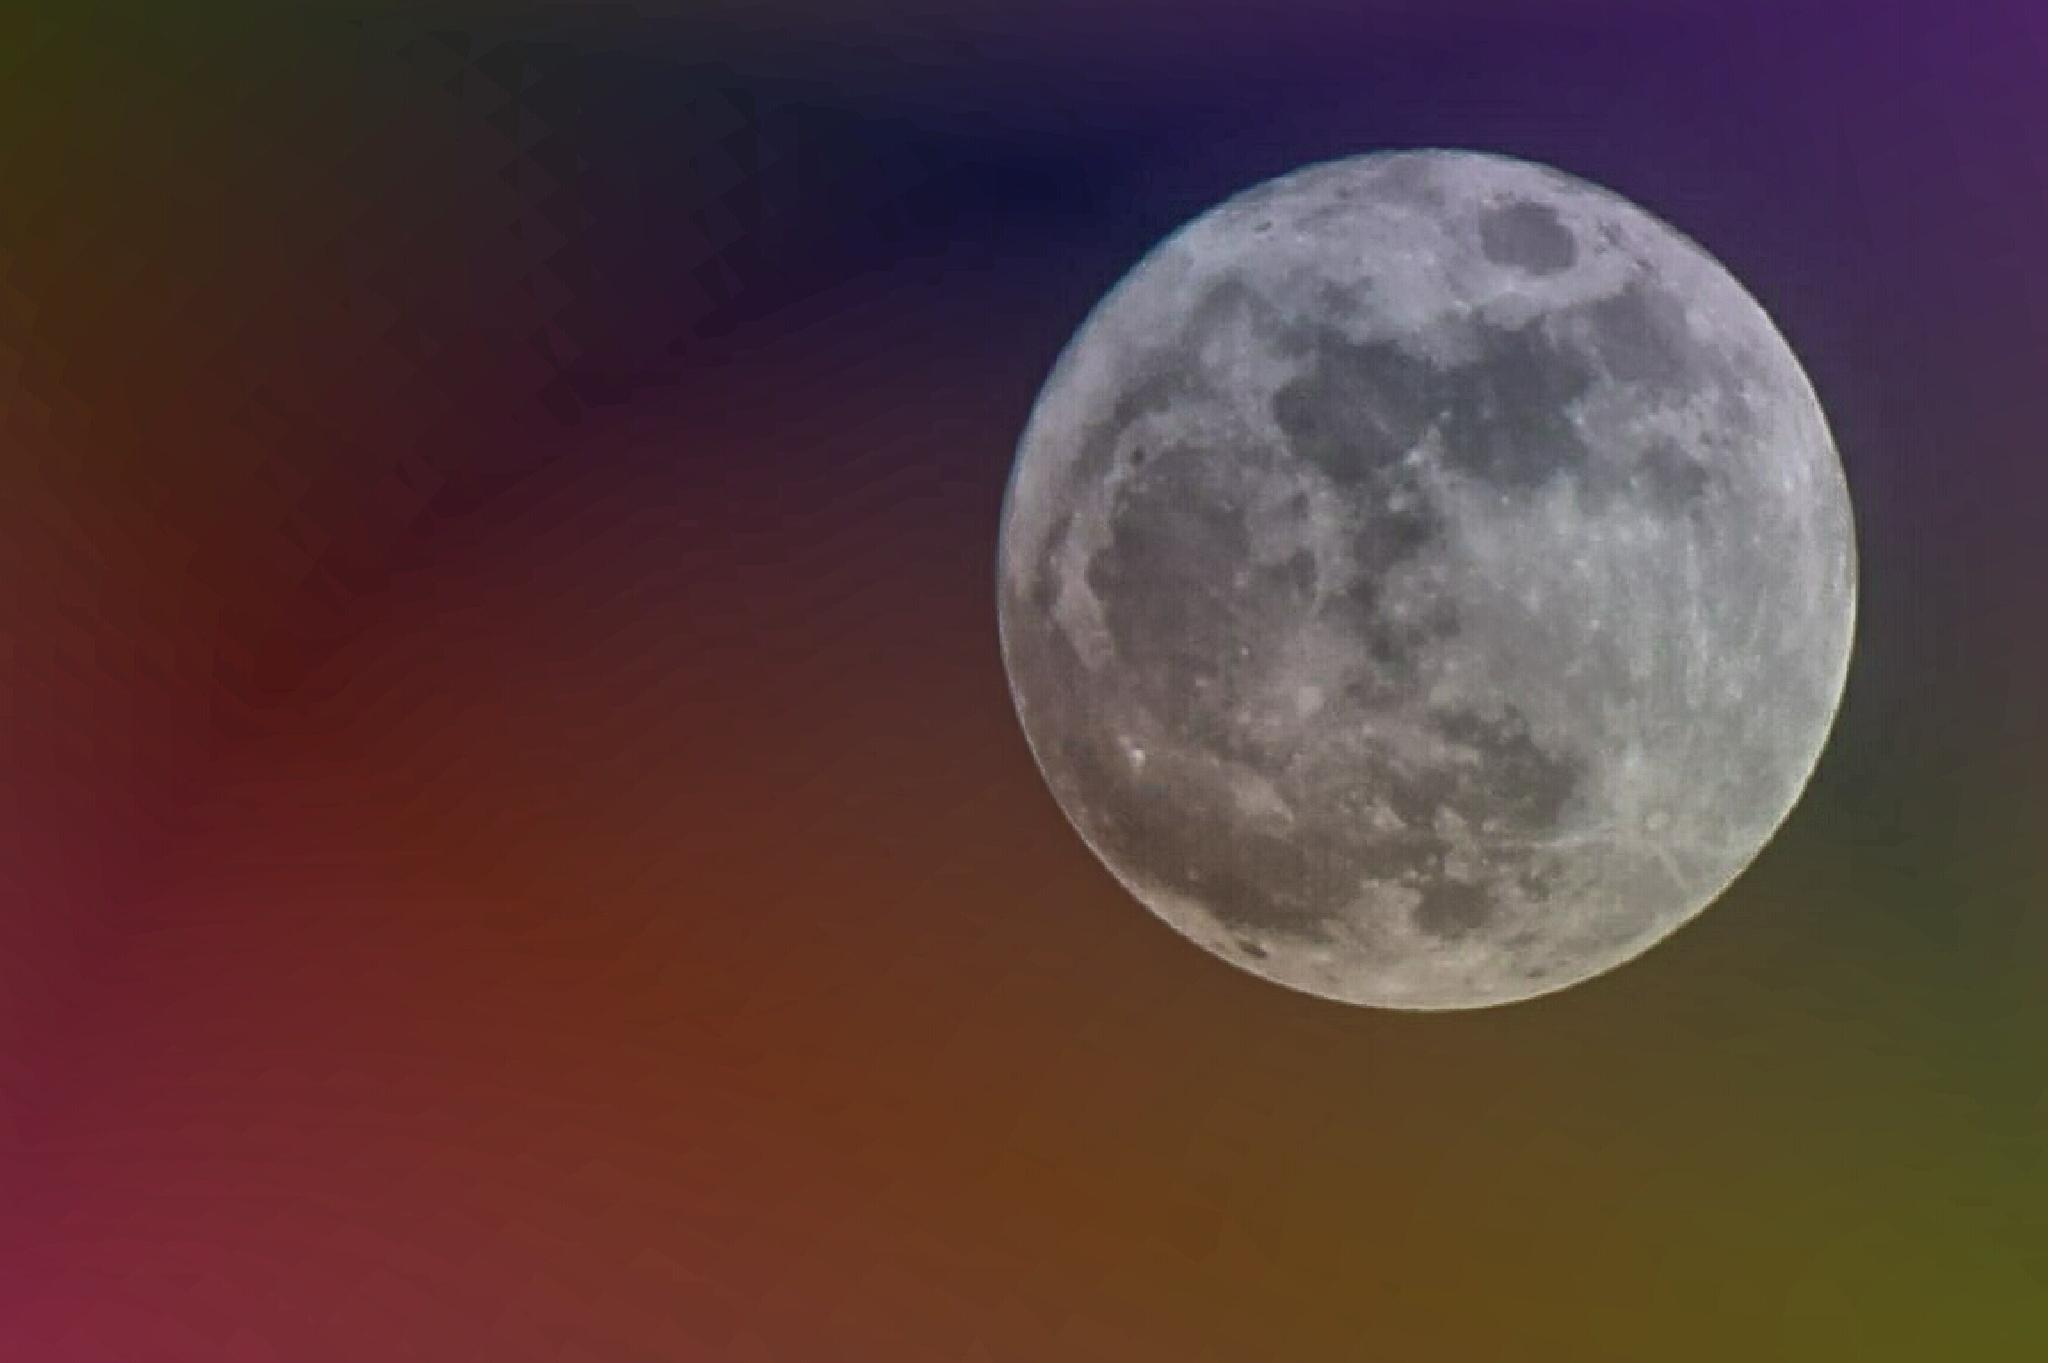 Colourful Moonlight by danlandry69